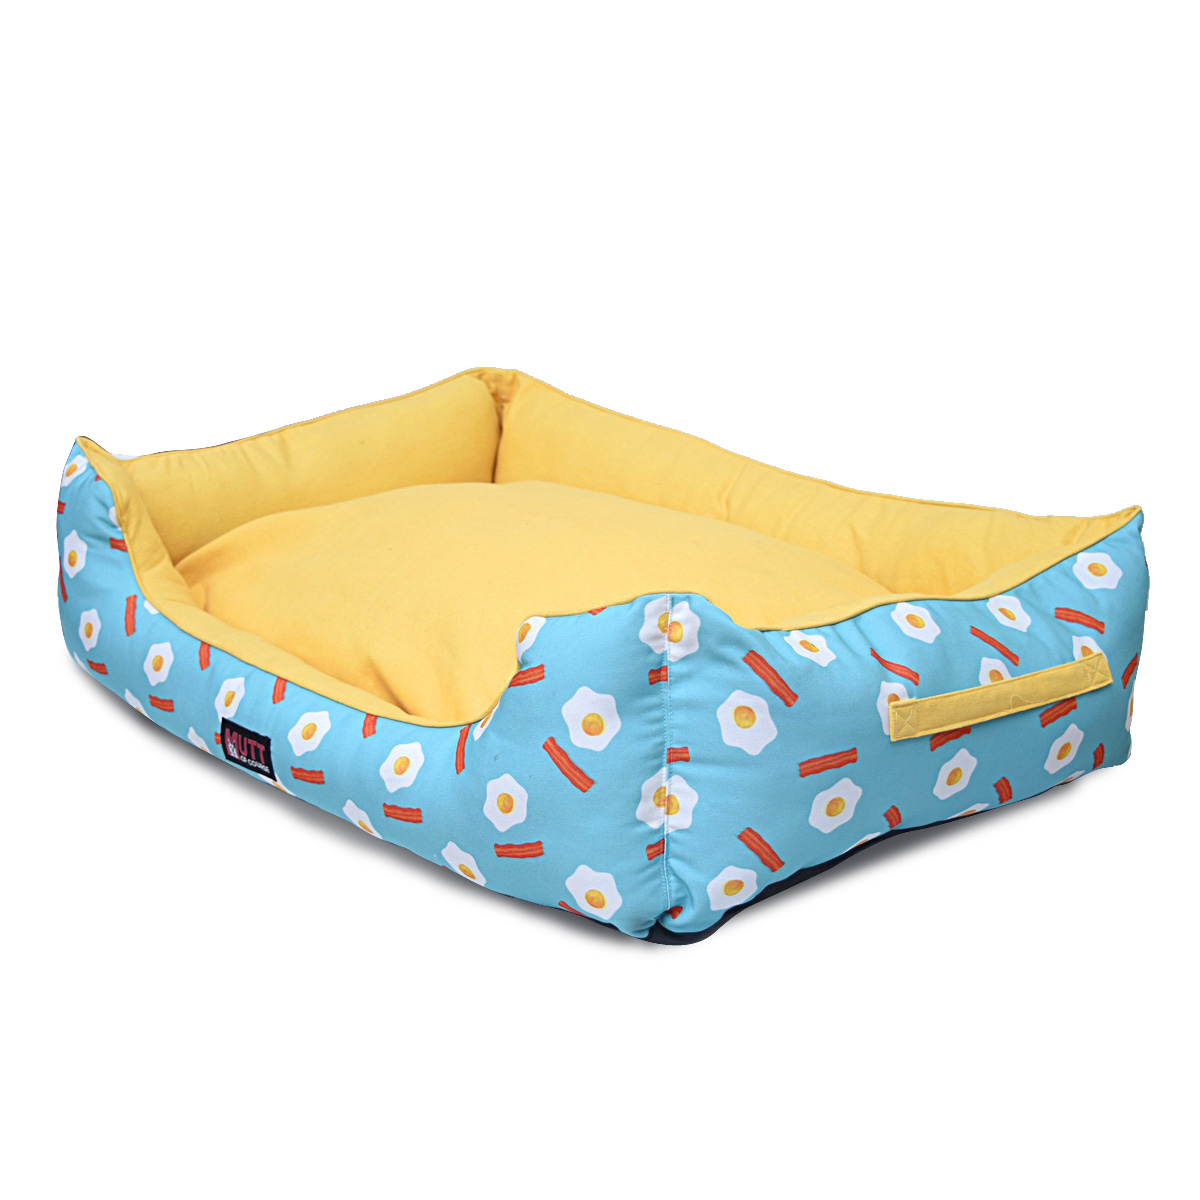 Mutt Of Course Lounger Bed For Dogs - Eggs N Bacon - Medium